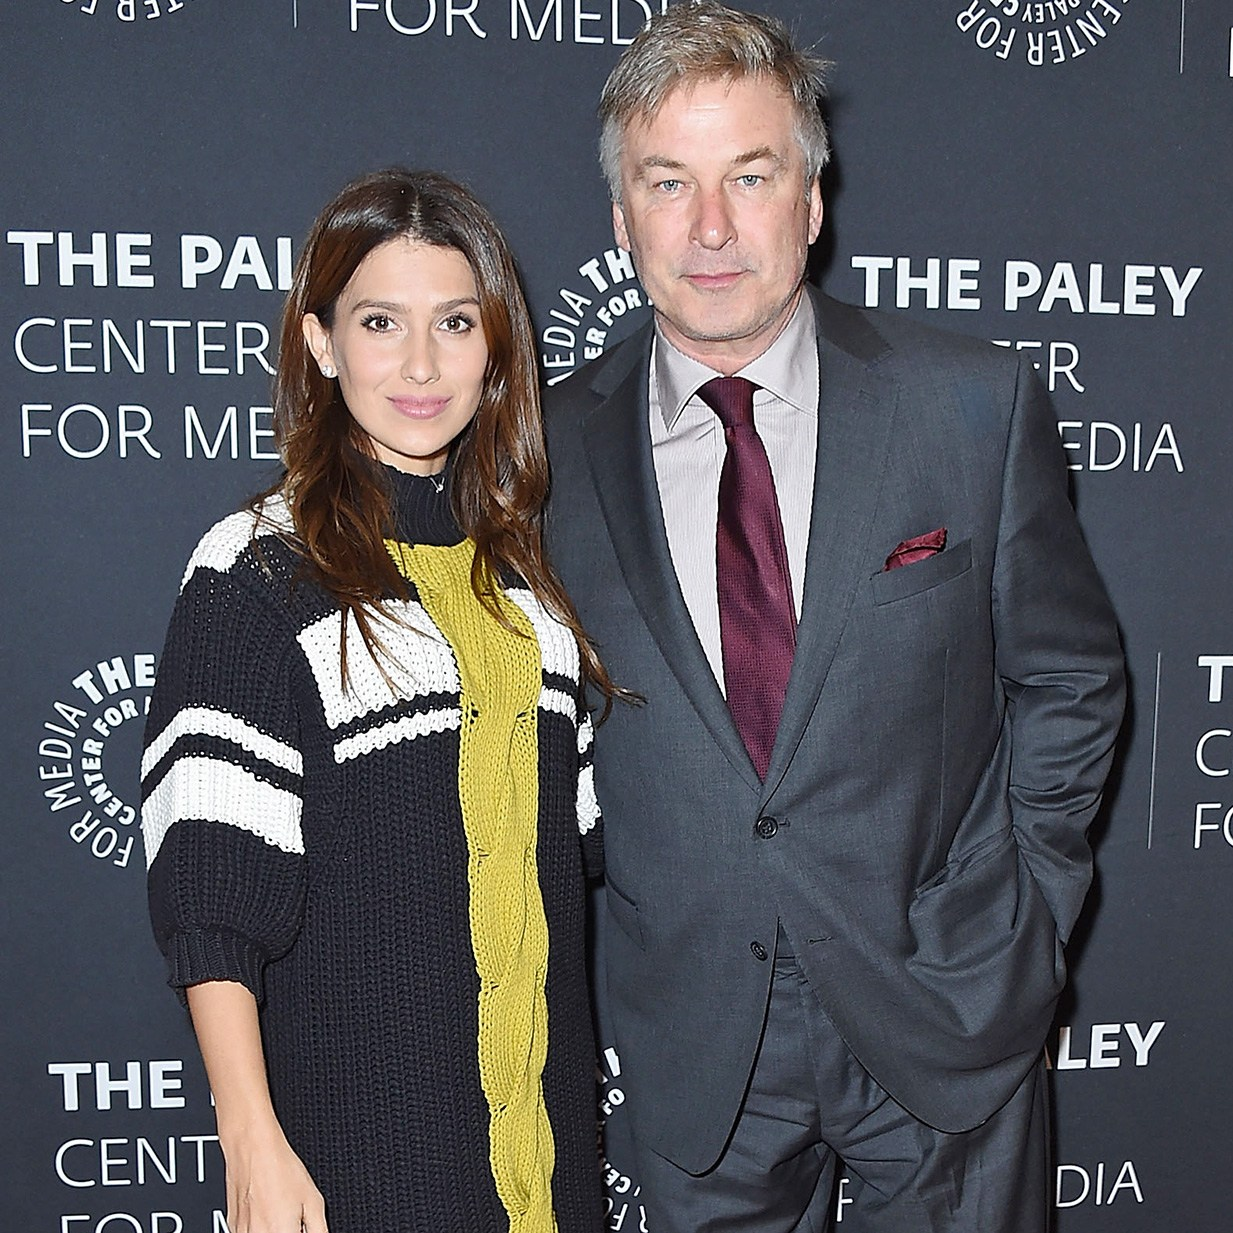 Hilaria Baldwin, Alec Baldwin, Pregnant, Baby, Gender Reveal